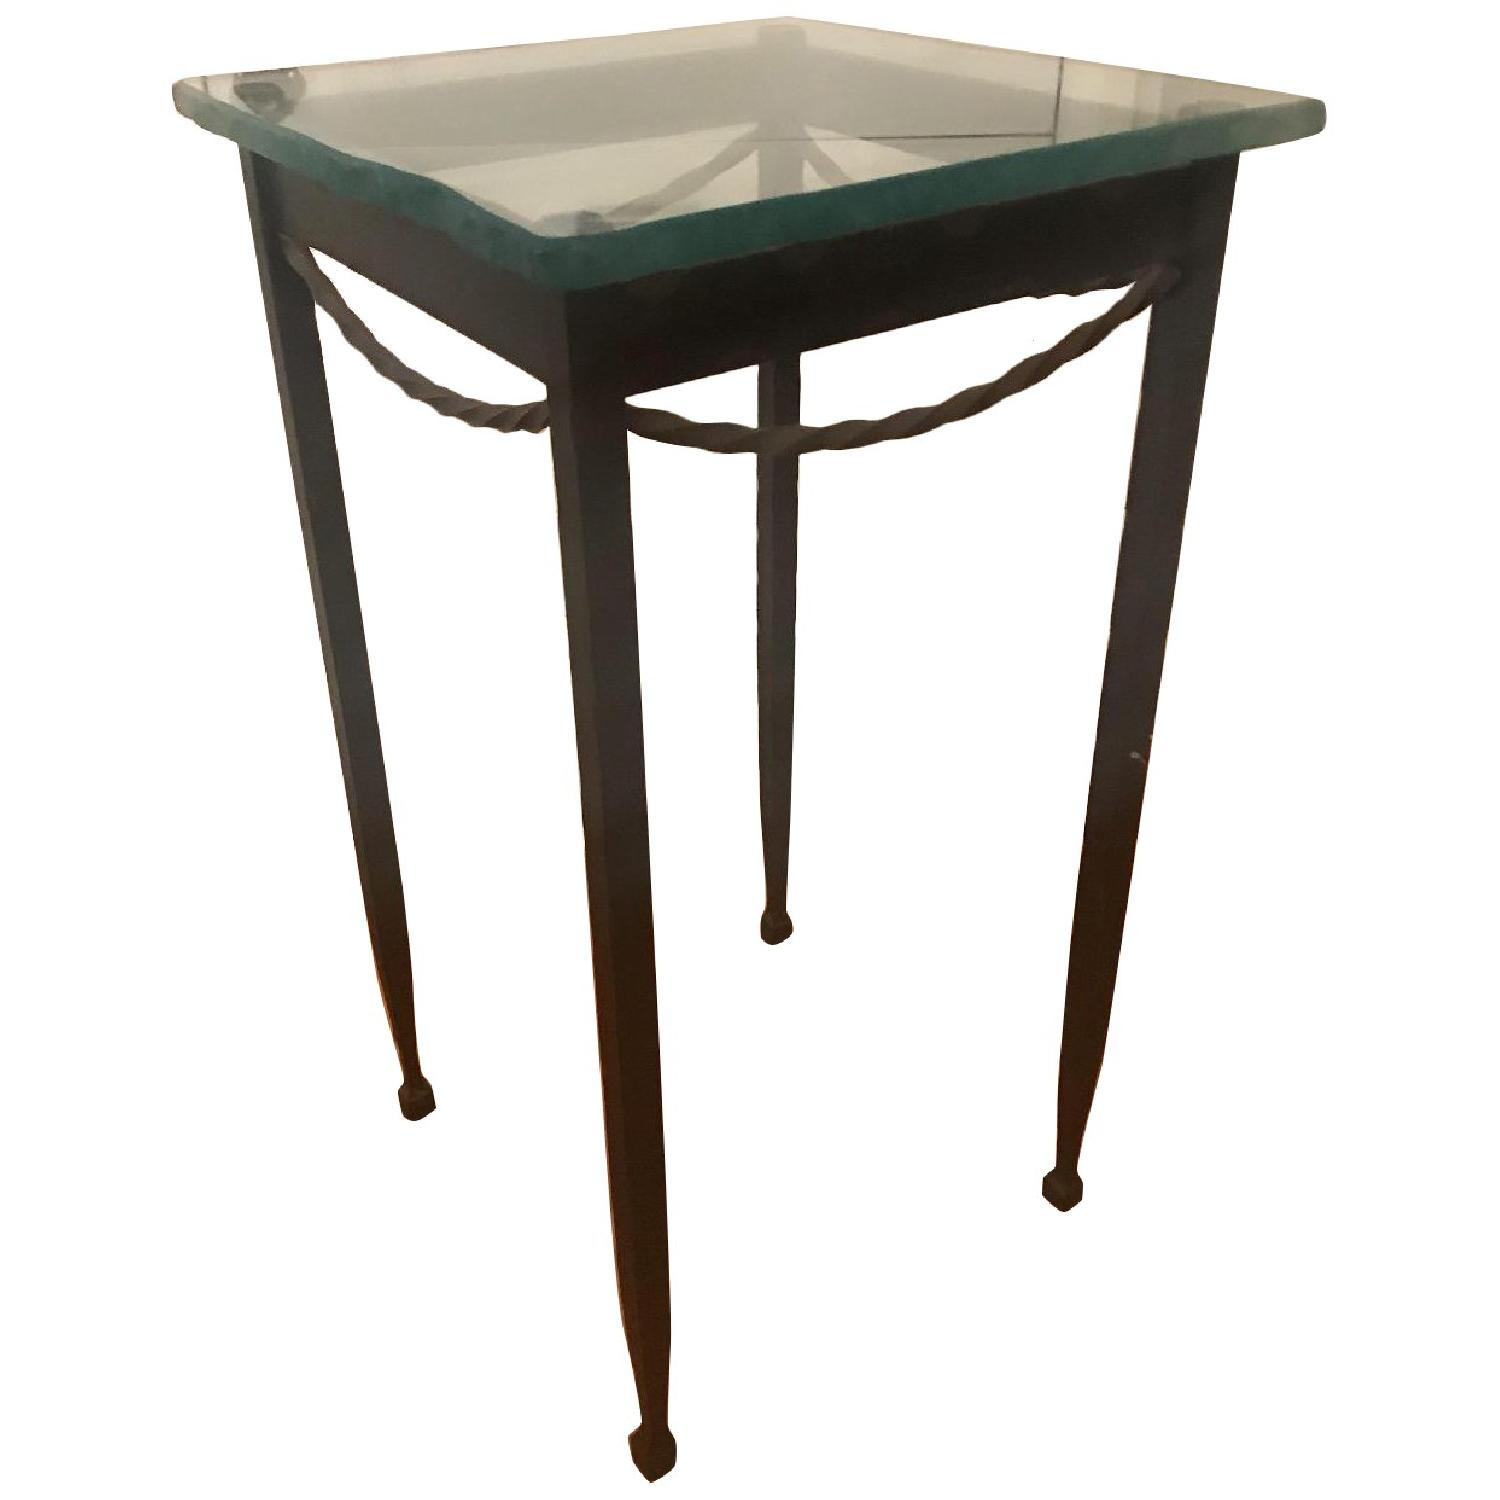 Rod Iron & Glass End/Accent Tables - image-0